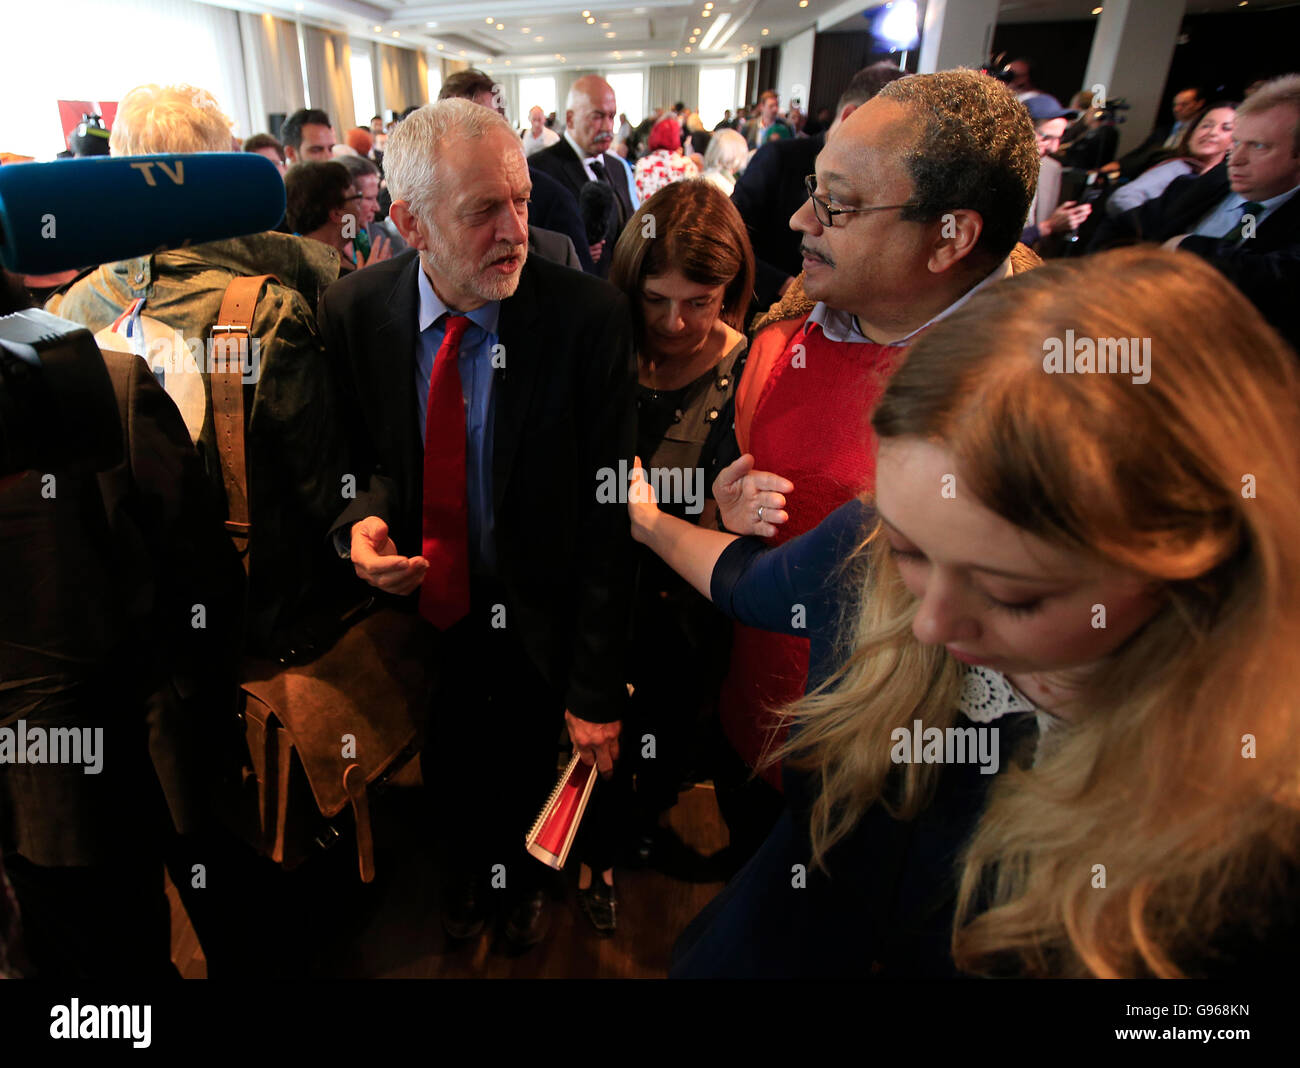 Labour Leader Jeremy Corbyn with Marc Wadsworth (centre), who runs Momentum Black Connexions, following a speech - Stock Image